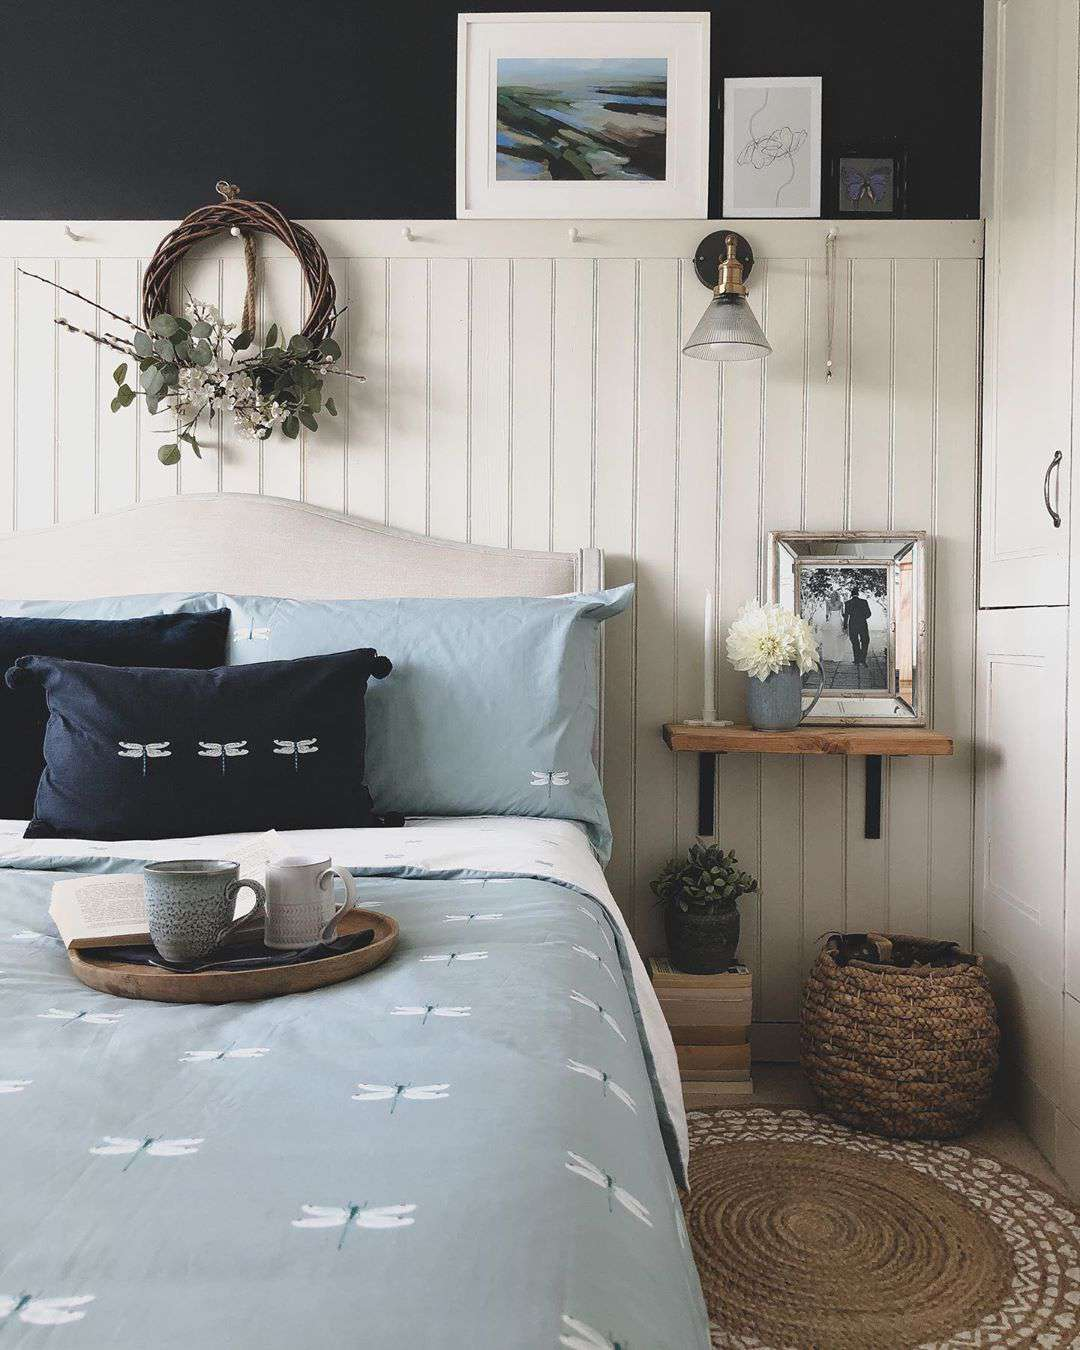 Bedroom with blue walls and white paneling